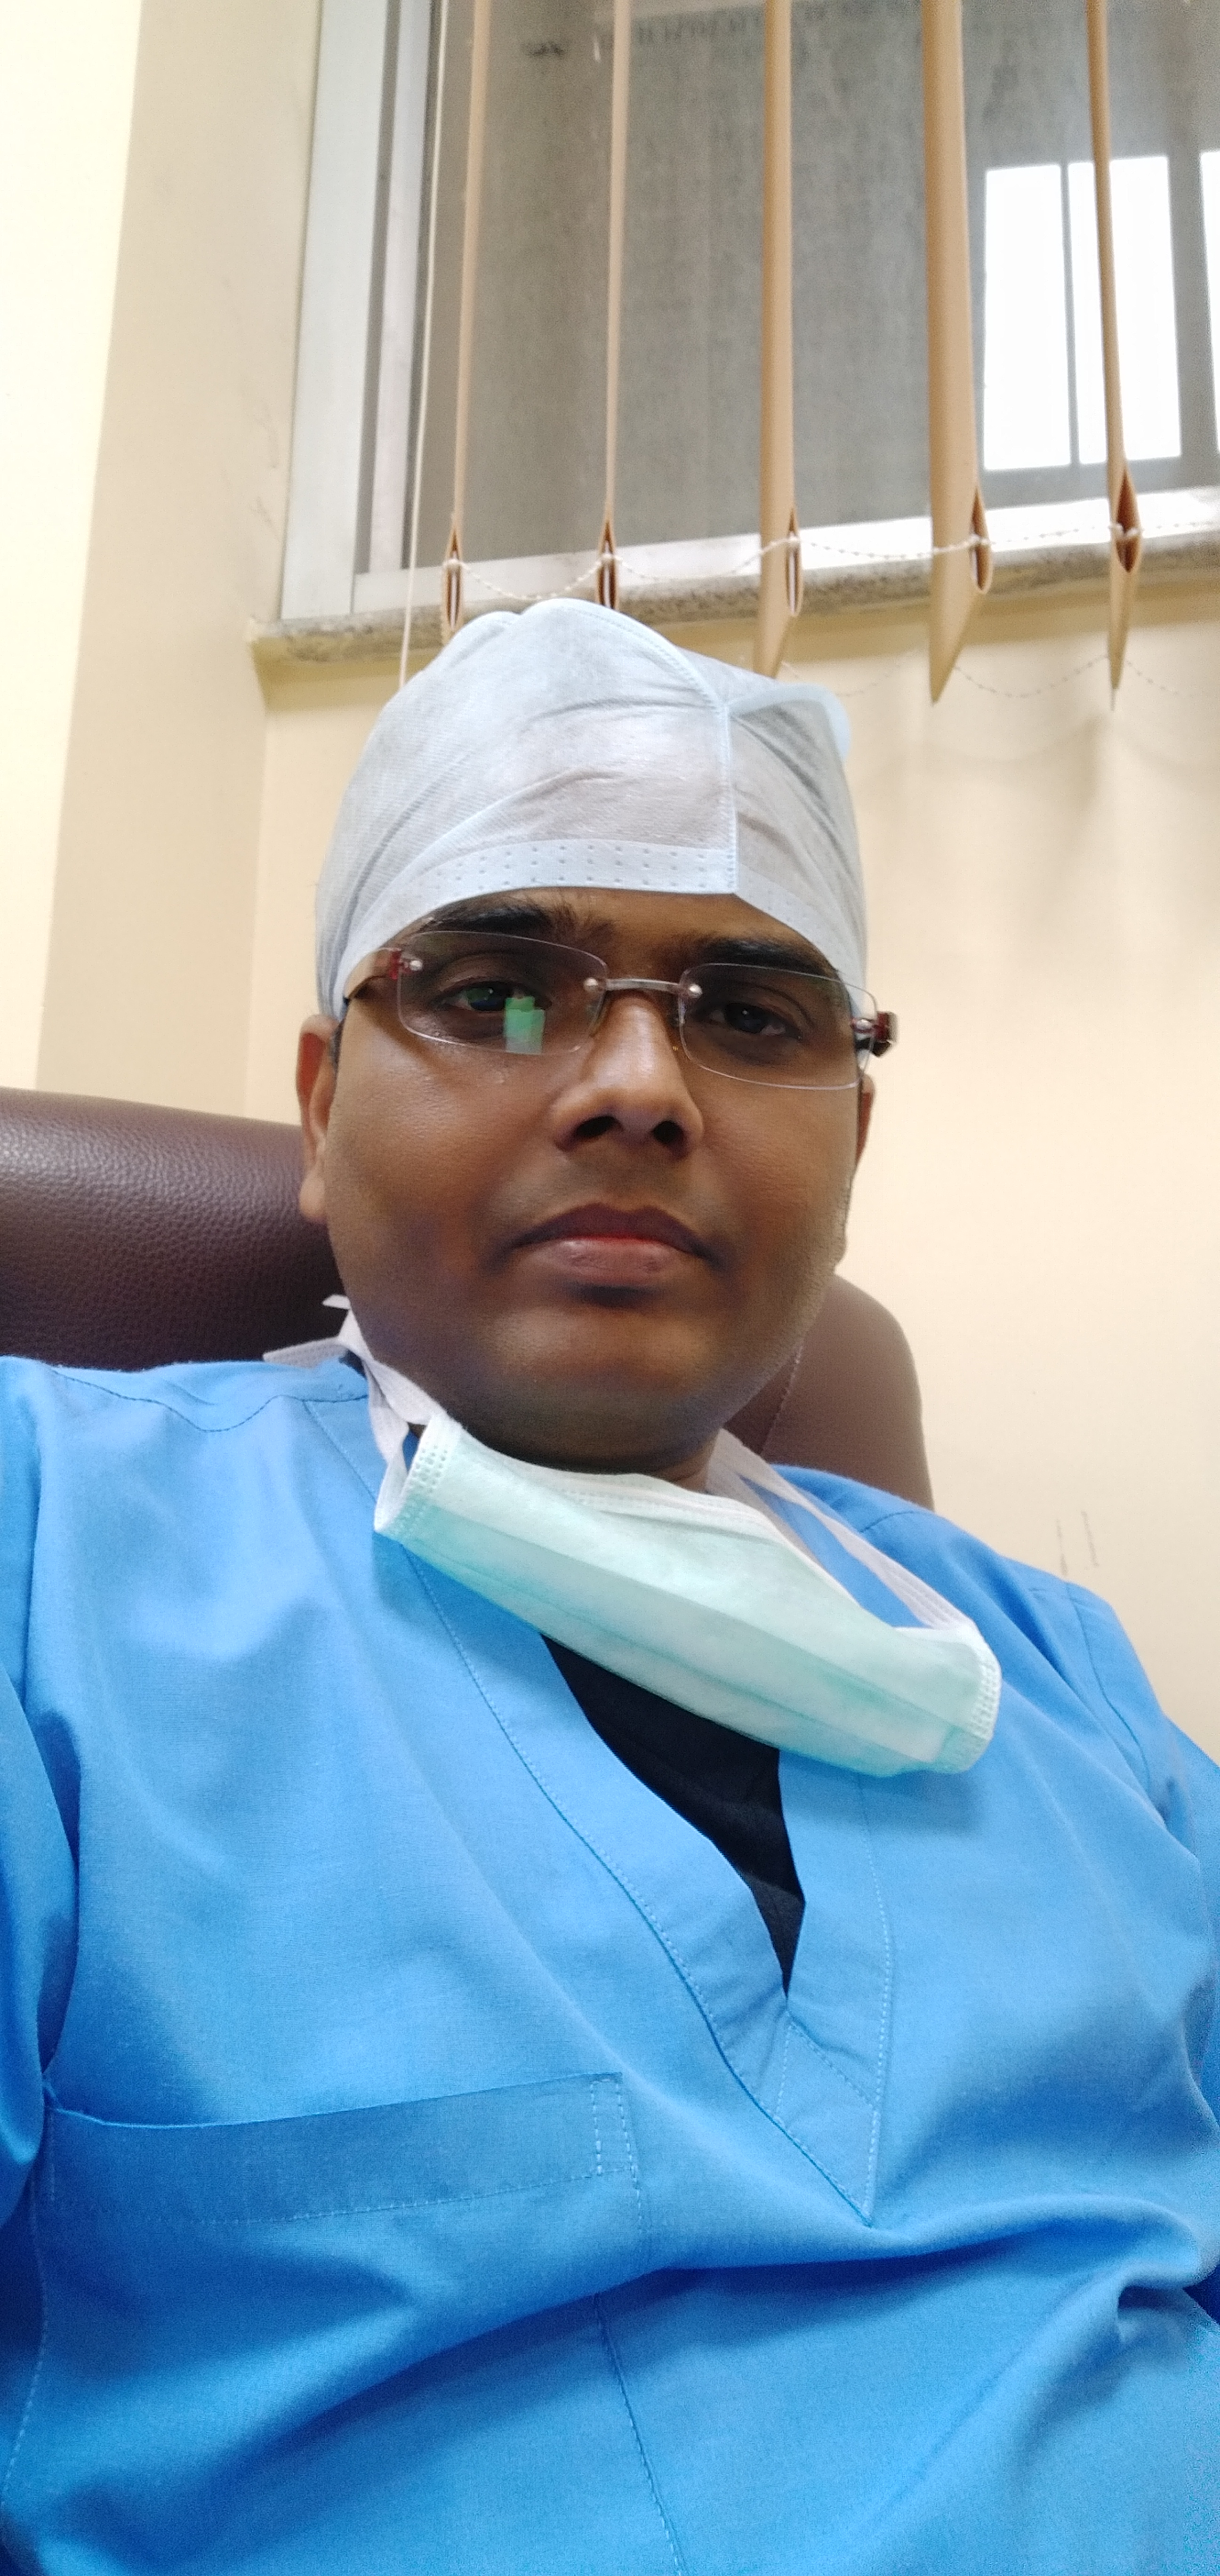 Cardiologists in Lucknow - Book Instant Appointment, Consult